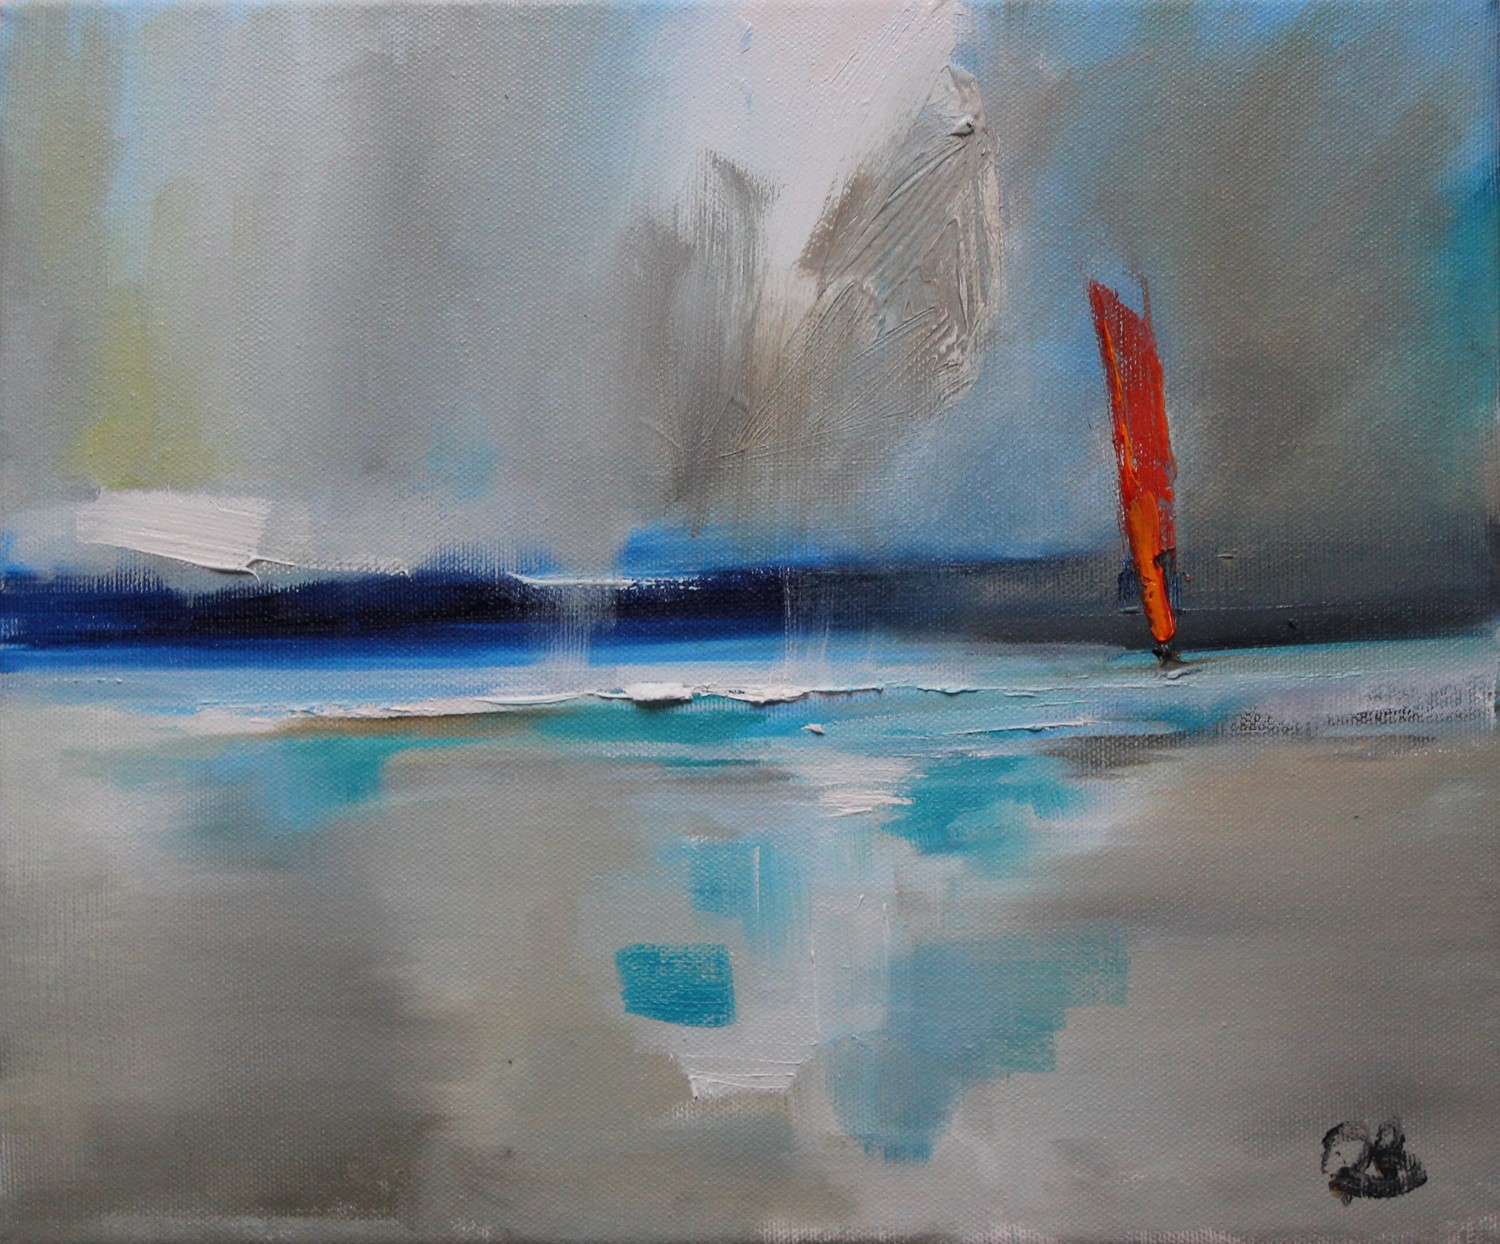 'Single Sail in the Storm' by artist Rosanne Barr